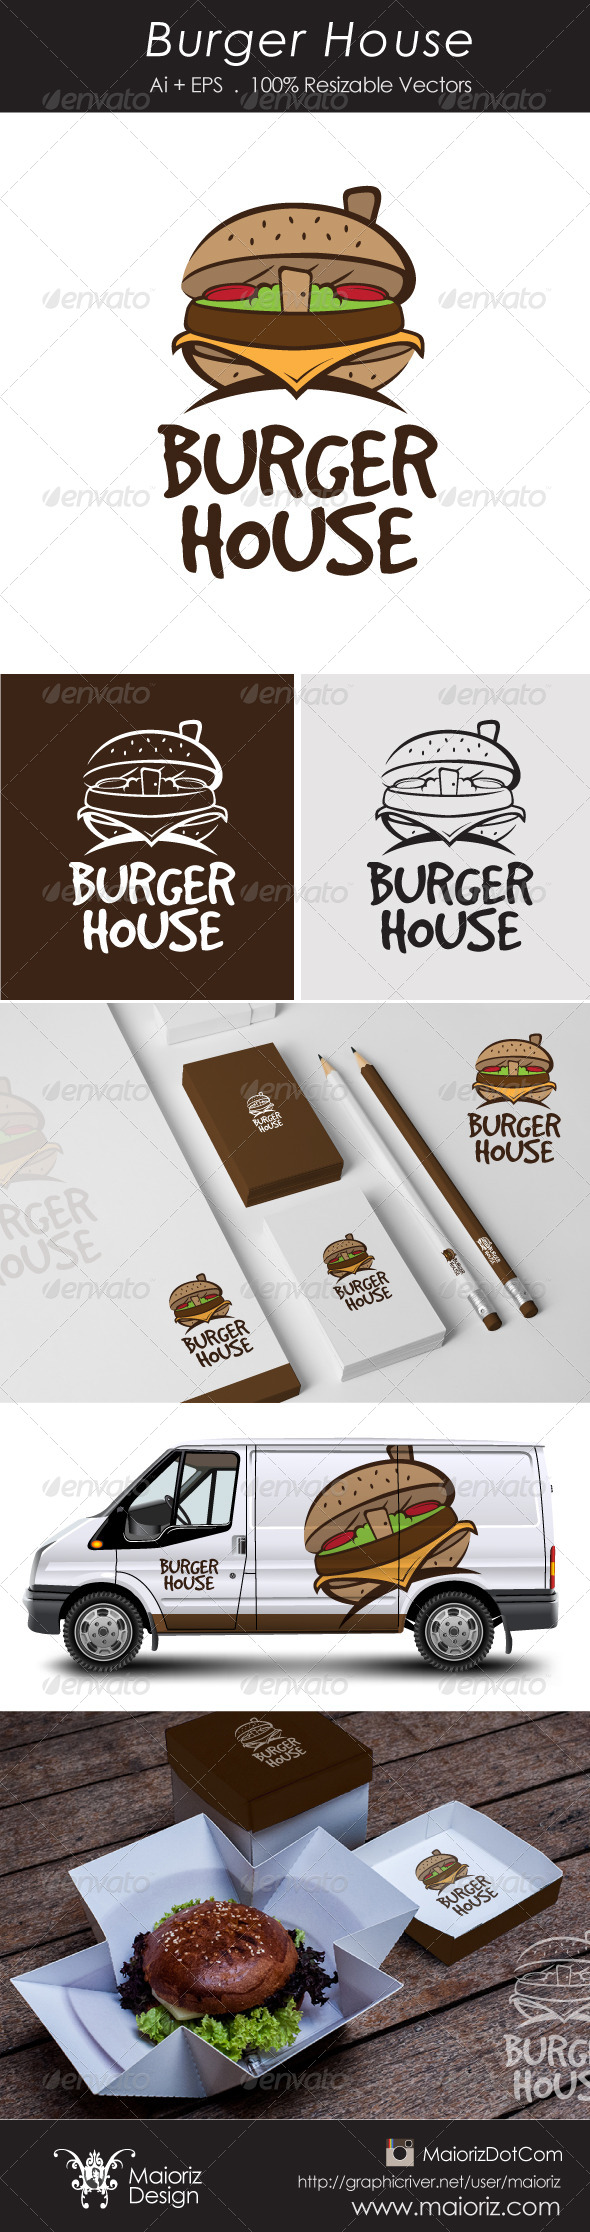 GraphicRiver Burger House Logotype 6051348